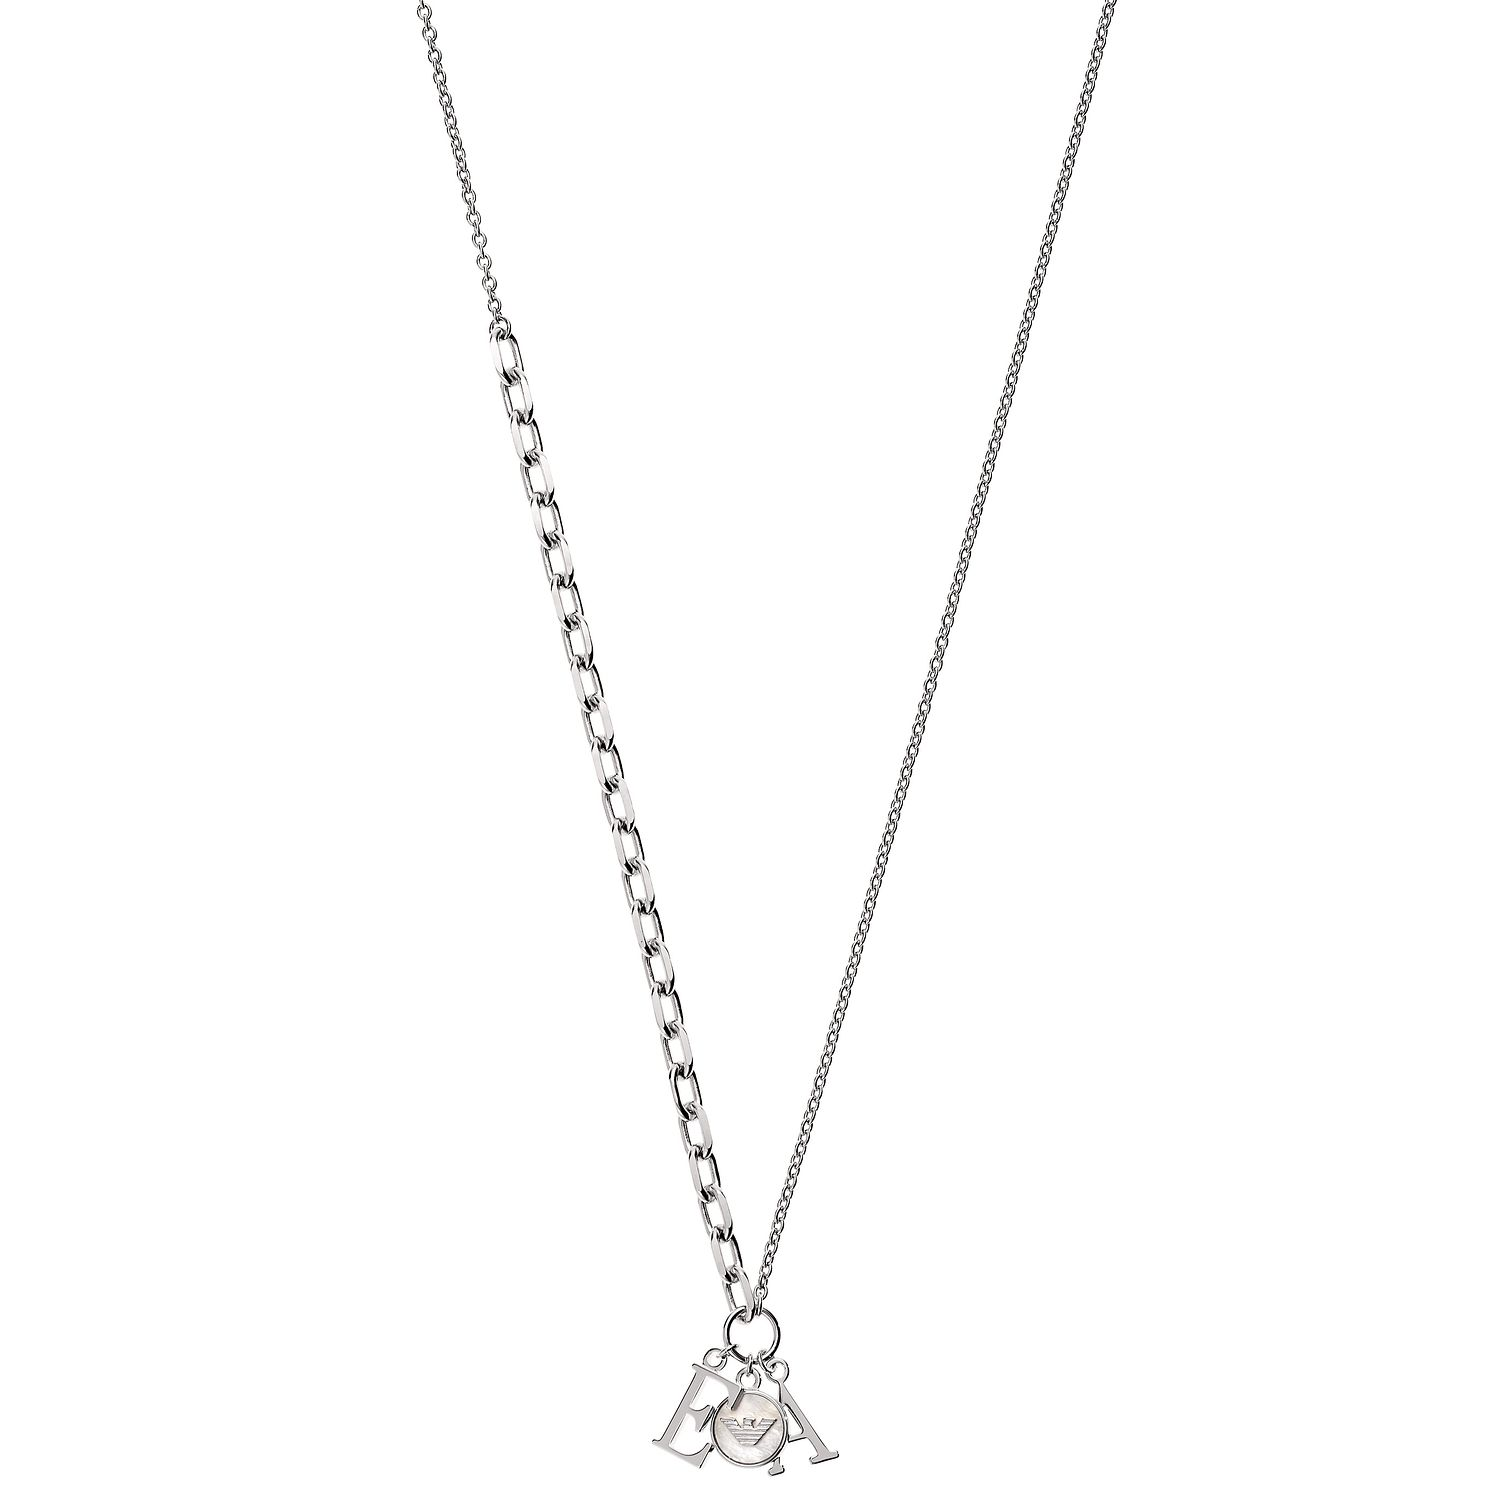 Emporio Armani Ladies' Sterling Silver Necklace - Product number 2358328